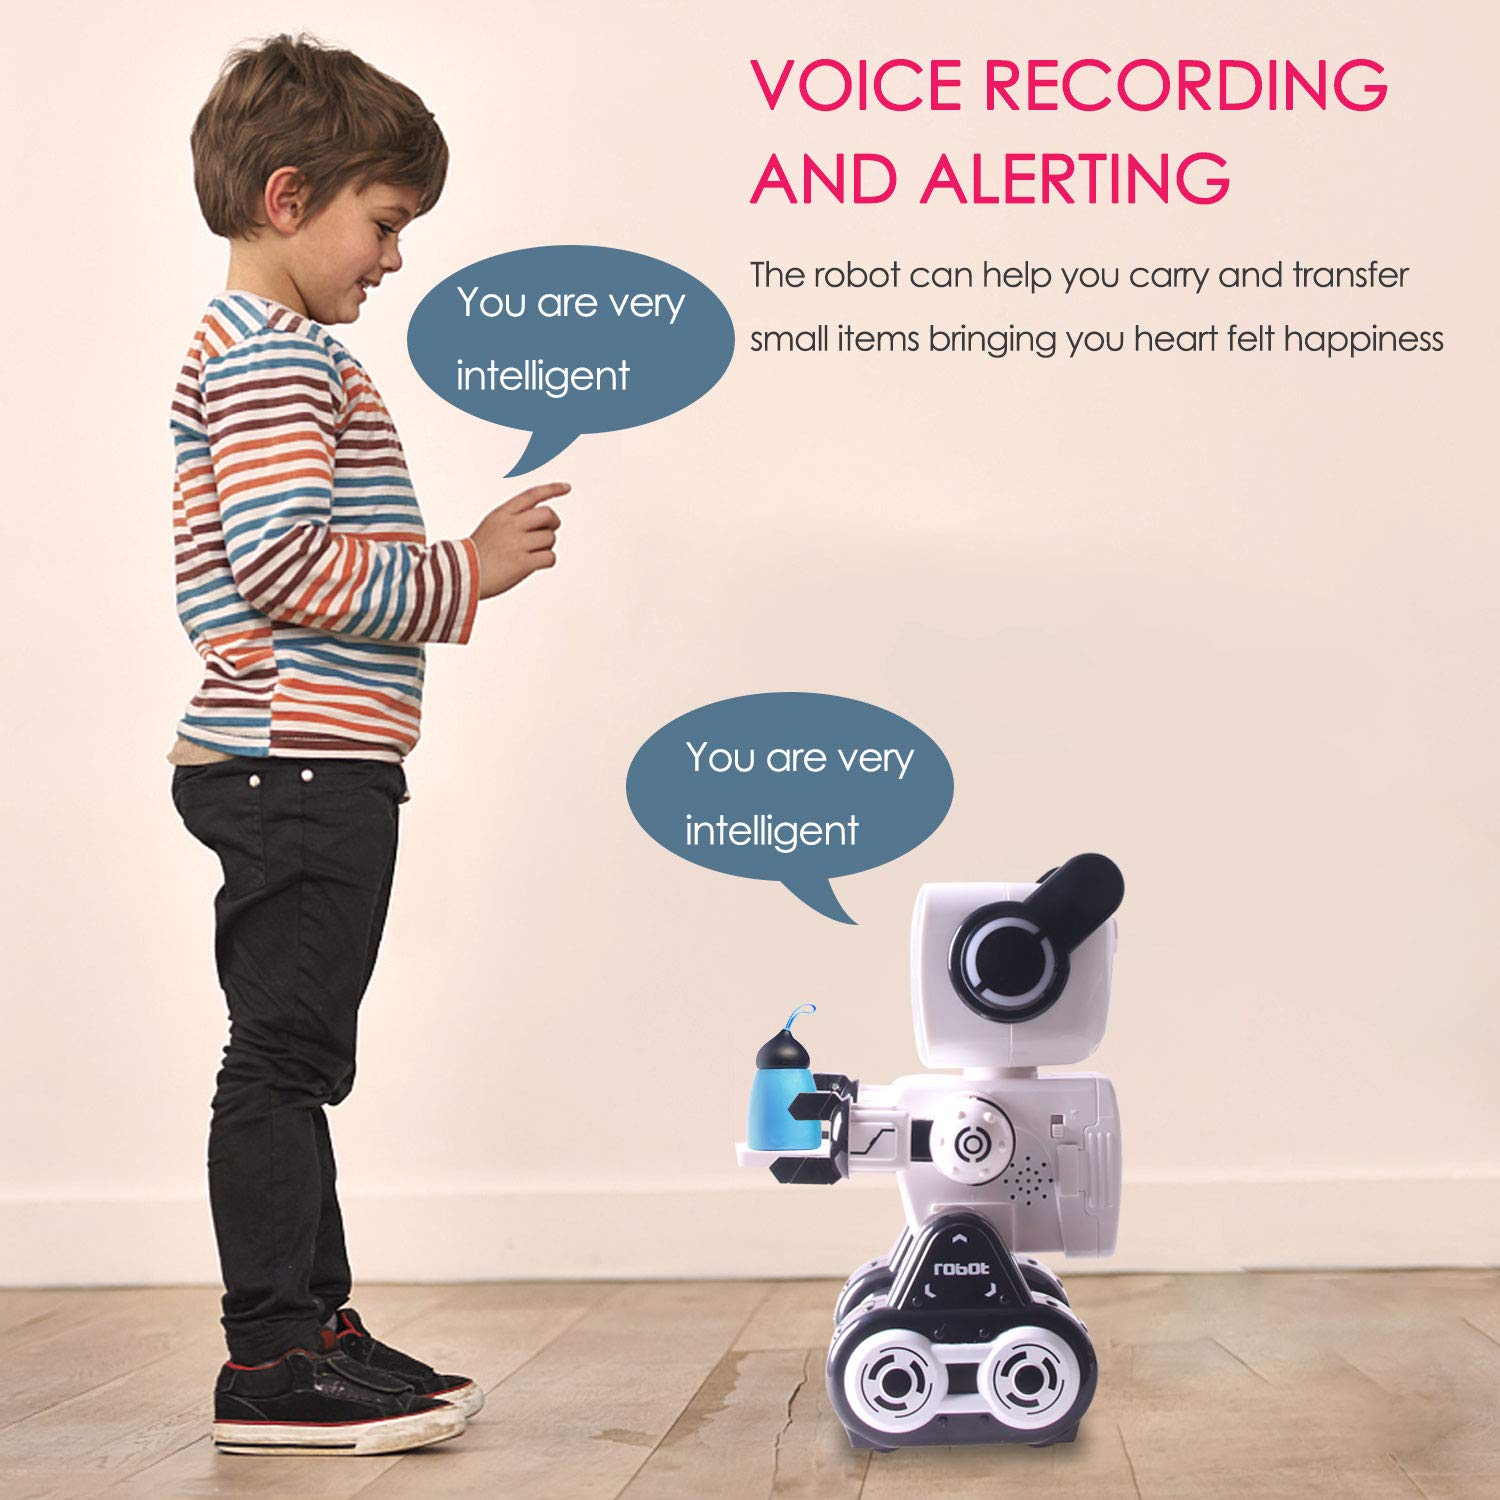 Remote Control Toy Robot for kids,Touch & Sound Control, Speaks, Dance Moves, Plays Music, Light-up Eyes & Mouth. Built-in Coin Bank. Programmable, Rechargeable RC Robot Kit for Boys, Girls All Ages. by IHBUDS (Image #5)